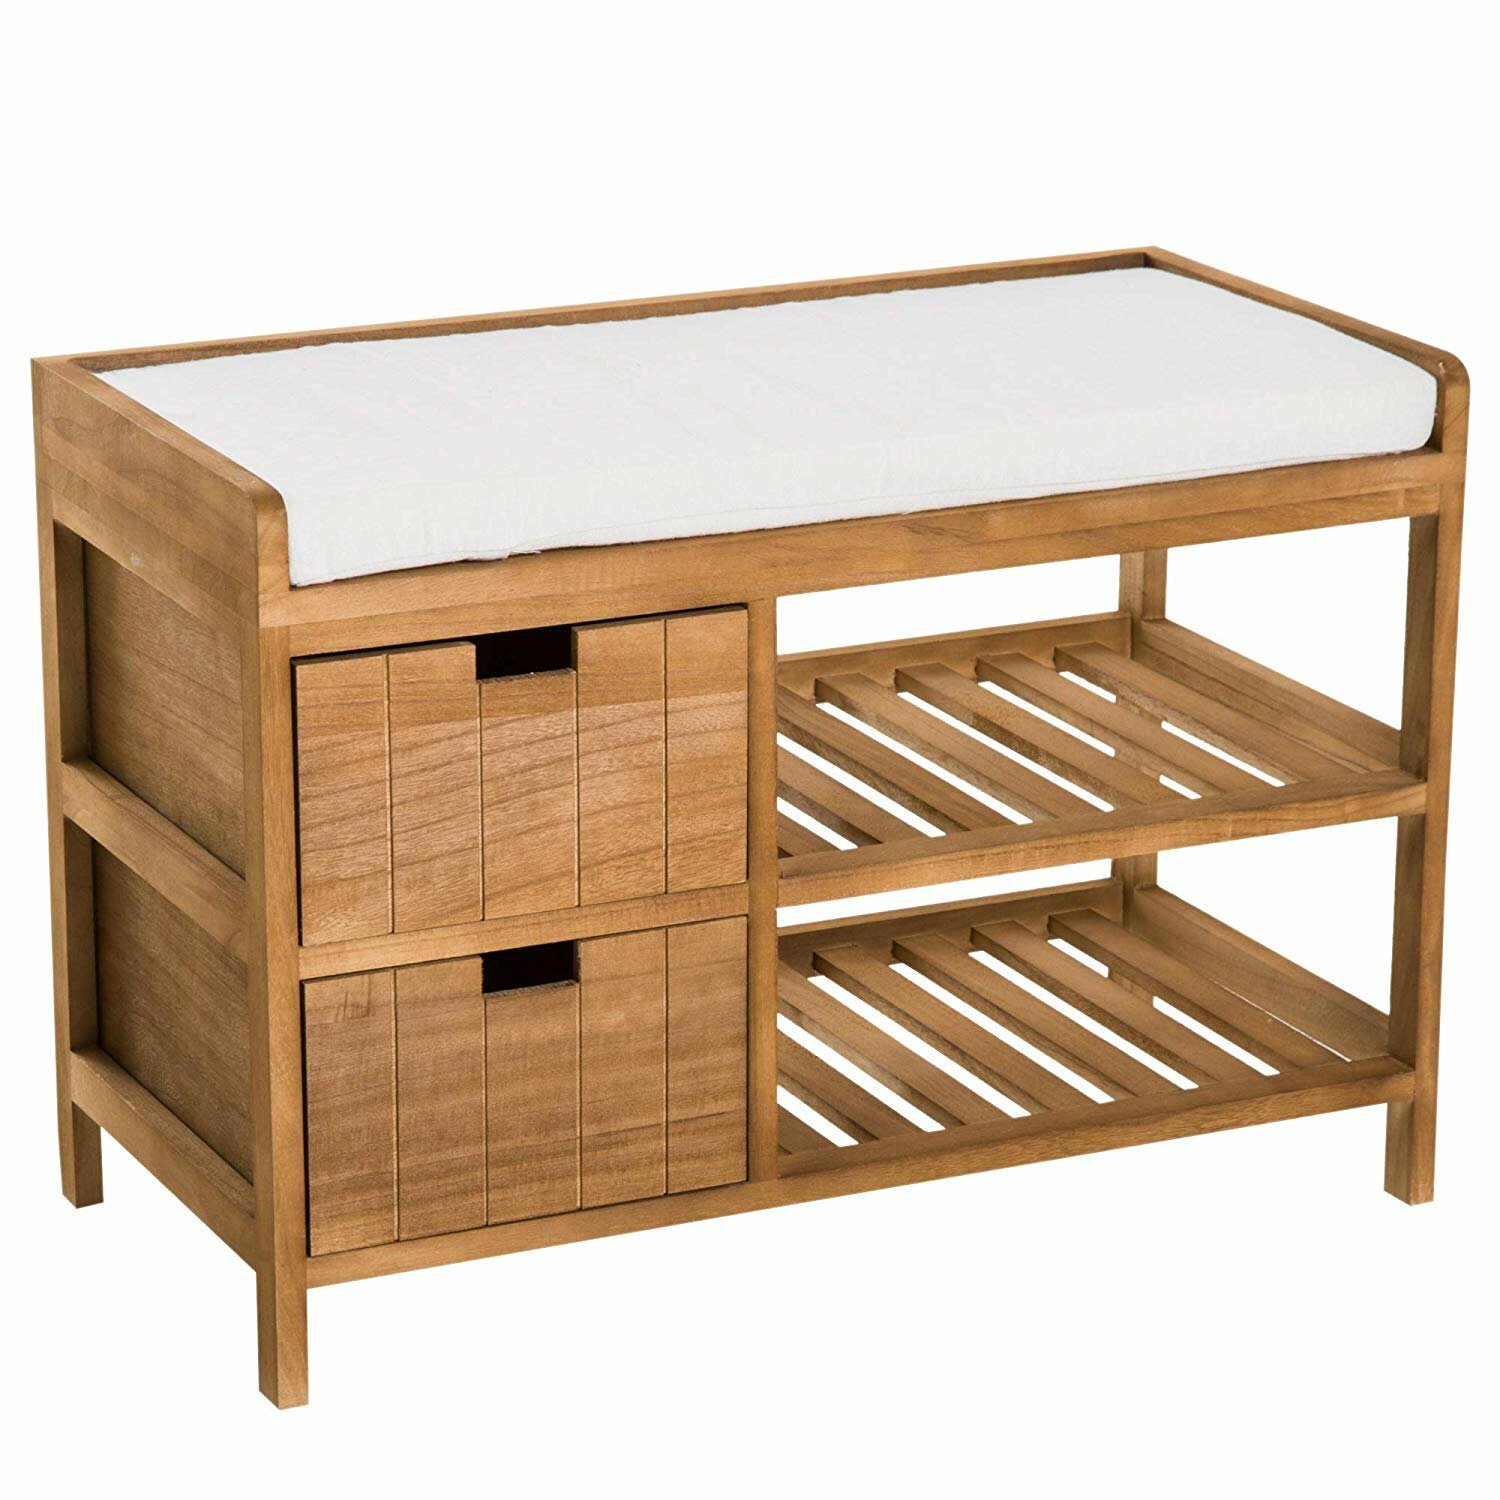 Zeke 2 Tier Wooden Shoe Storage Bench